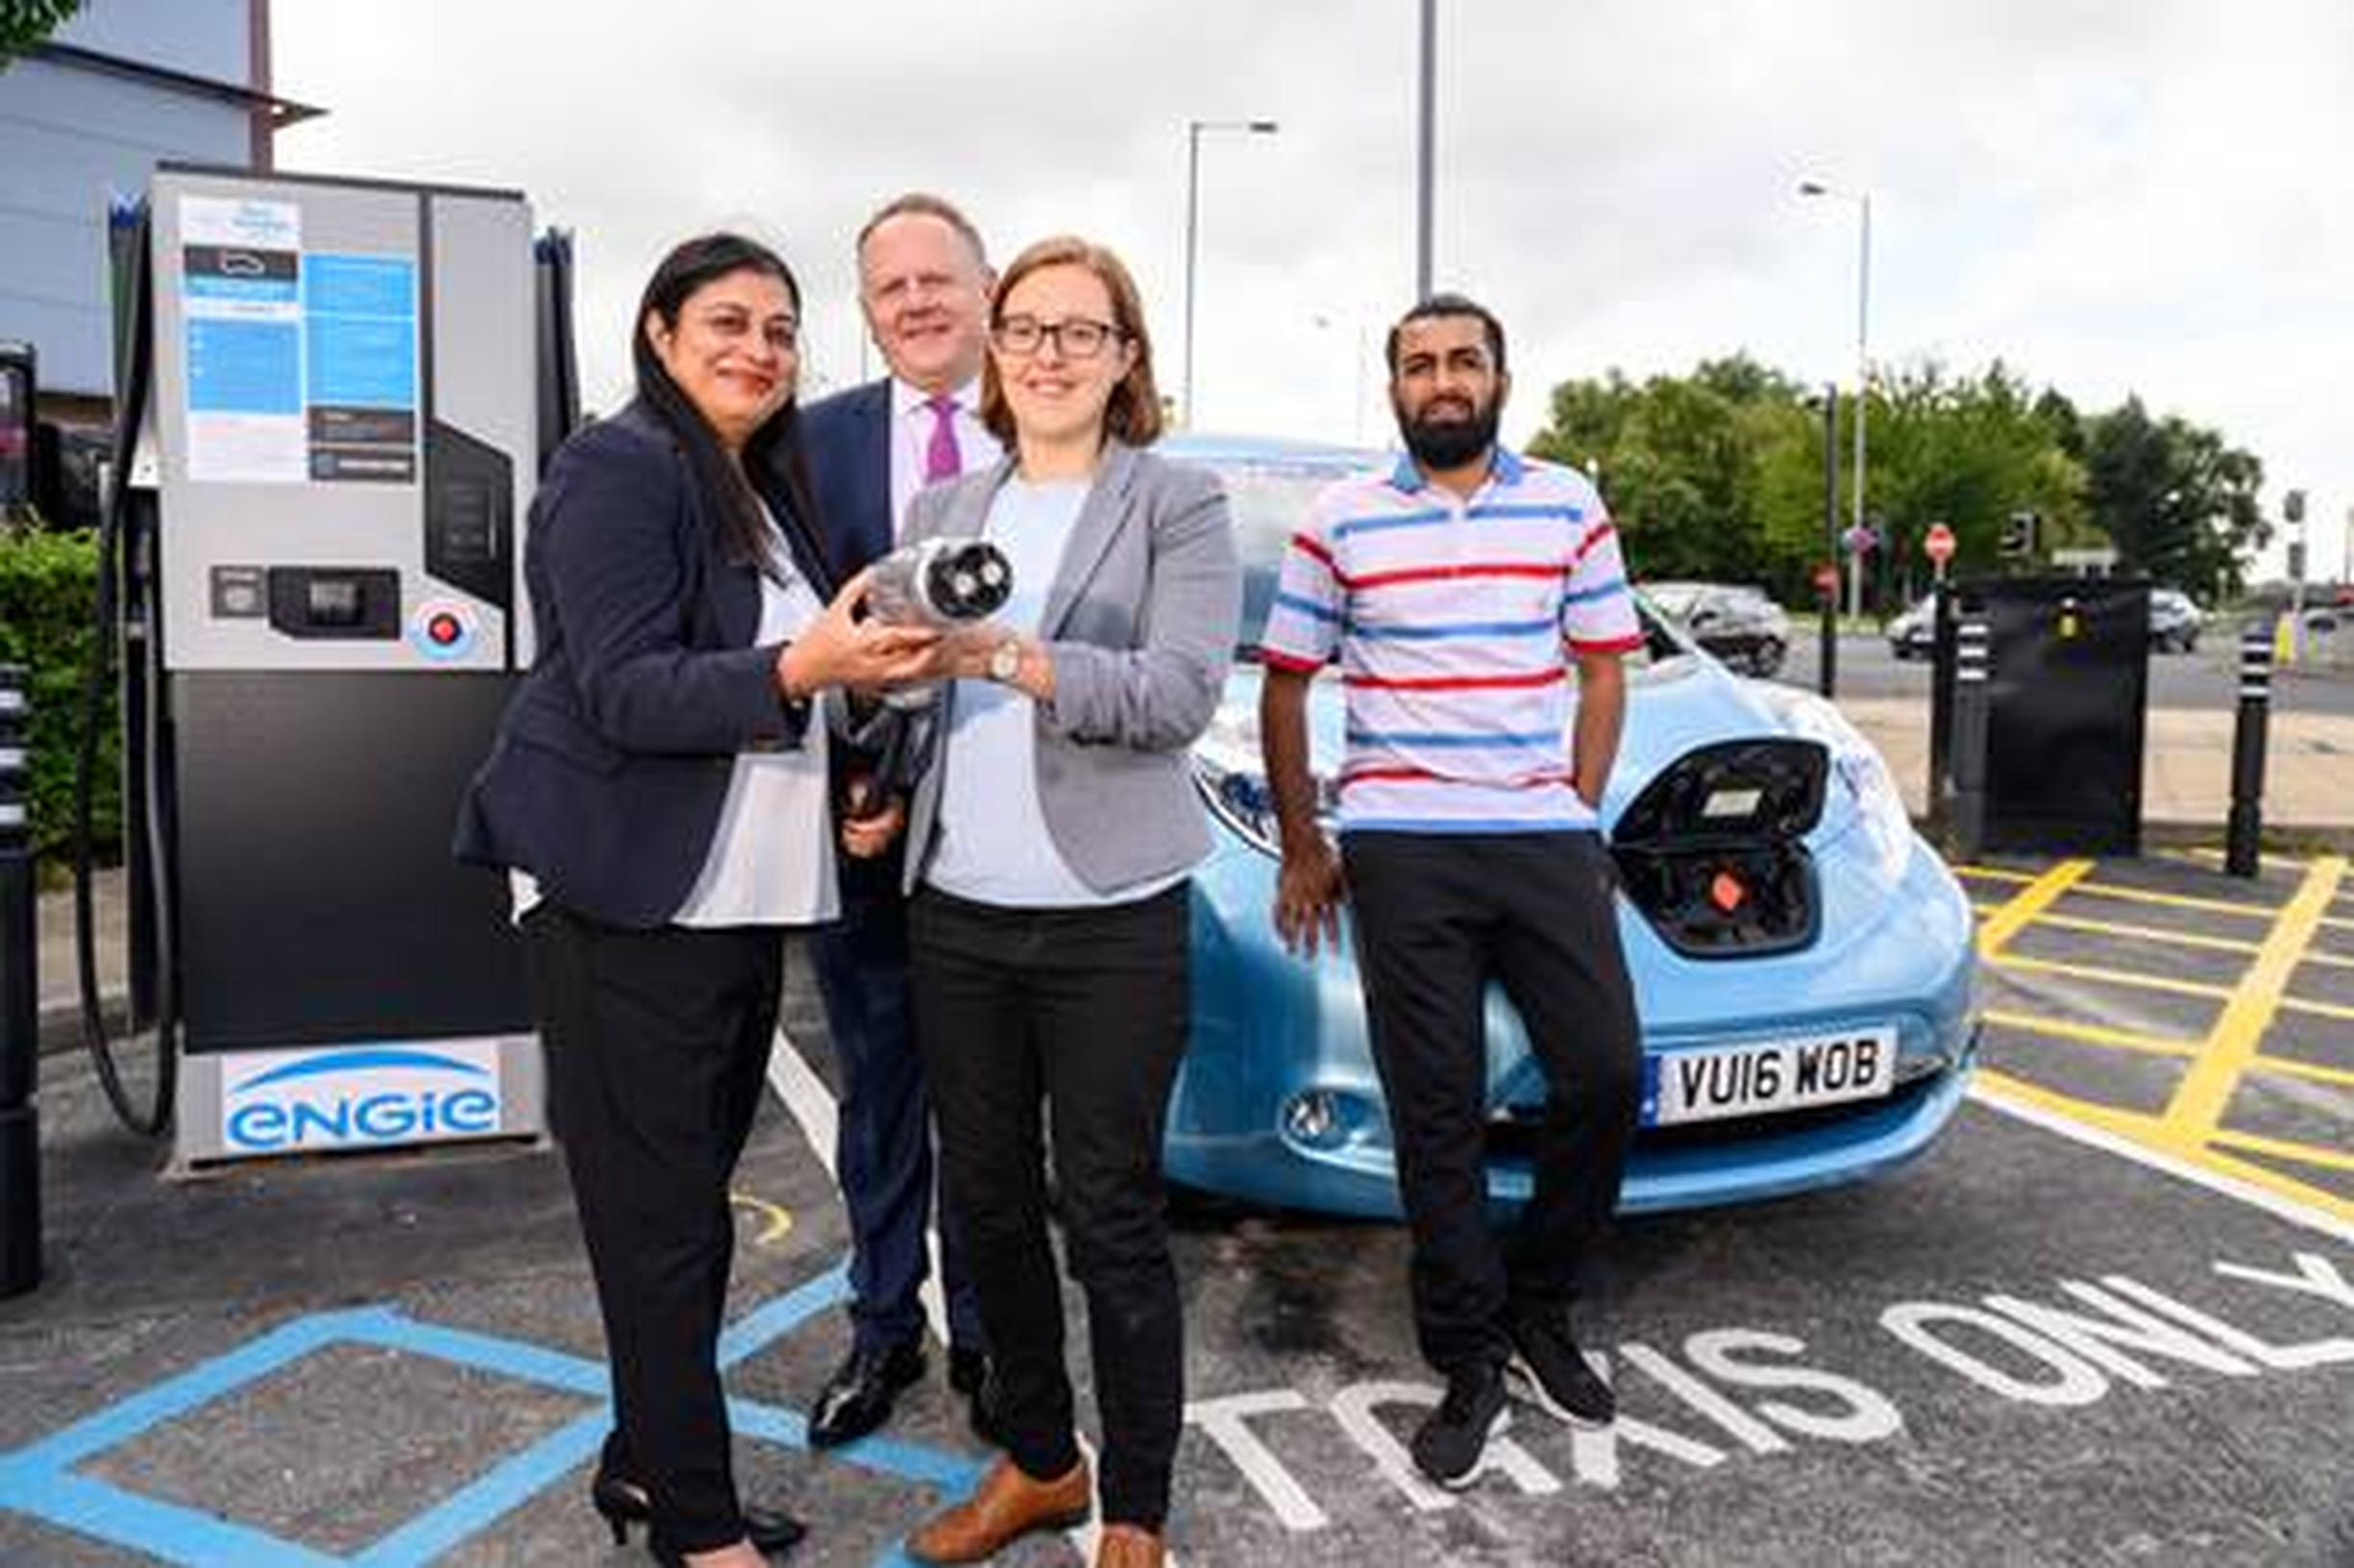 West Yorkshire electric vehicle rapid-charging network is live